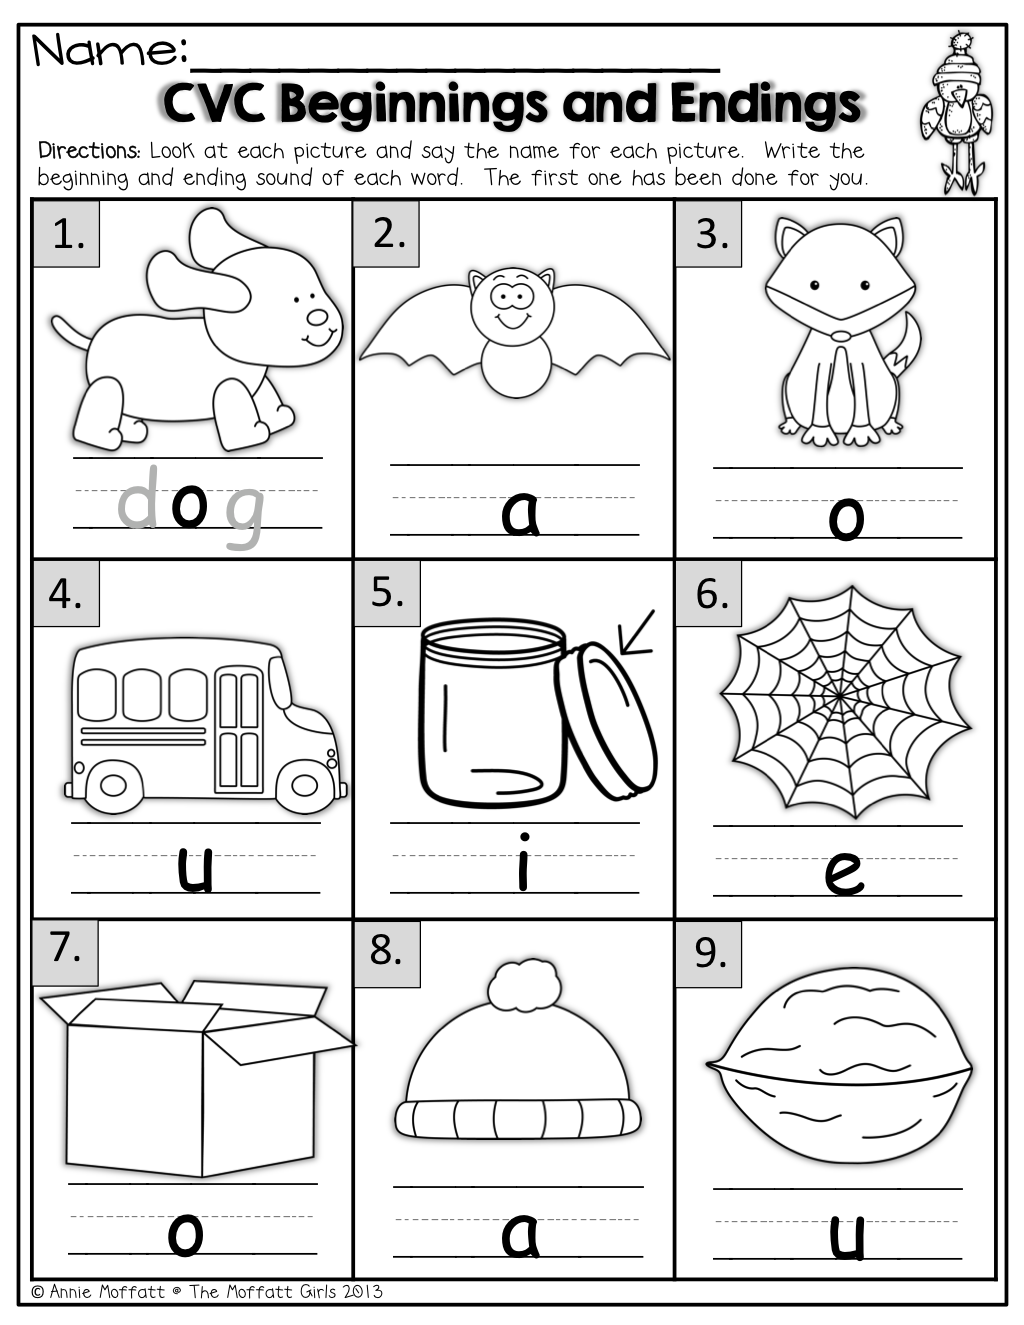 Worksheets Letter Sound Worksheets beginning and ending sounds kinderland collaborative kindergarten language arts this is the opposite of other worksheet has them put first last letter sight words to ma